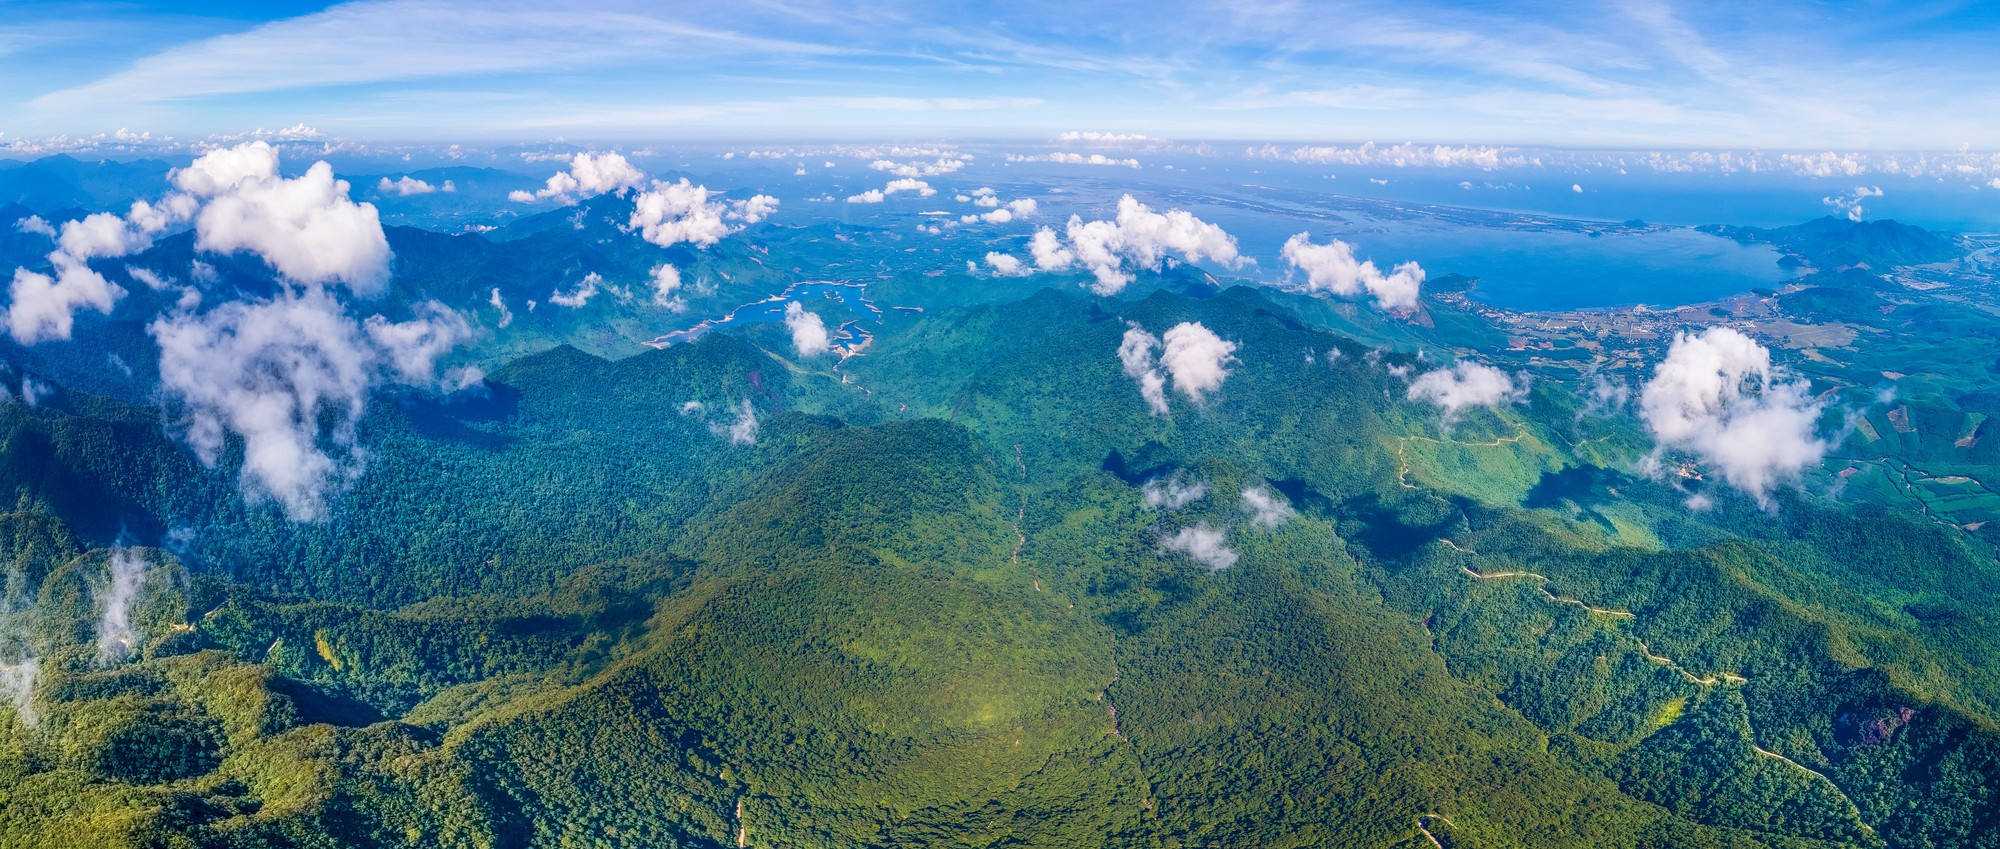 An aerial view of the Bach Ma Range in central Vietnam. Photo: Nguyen Phong